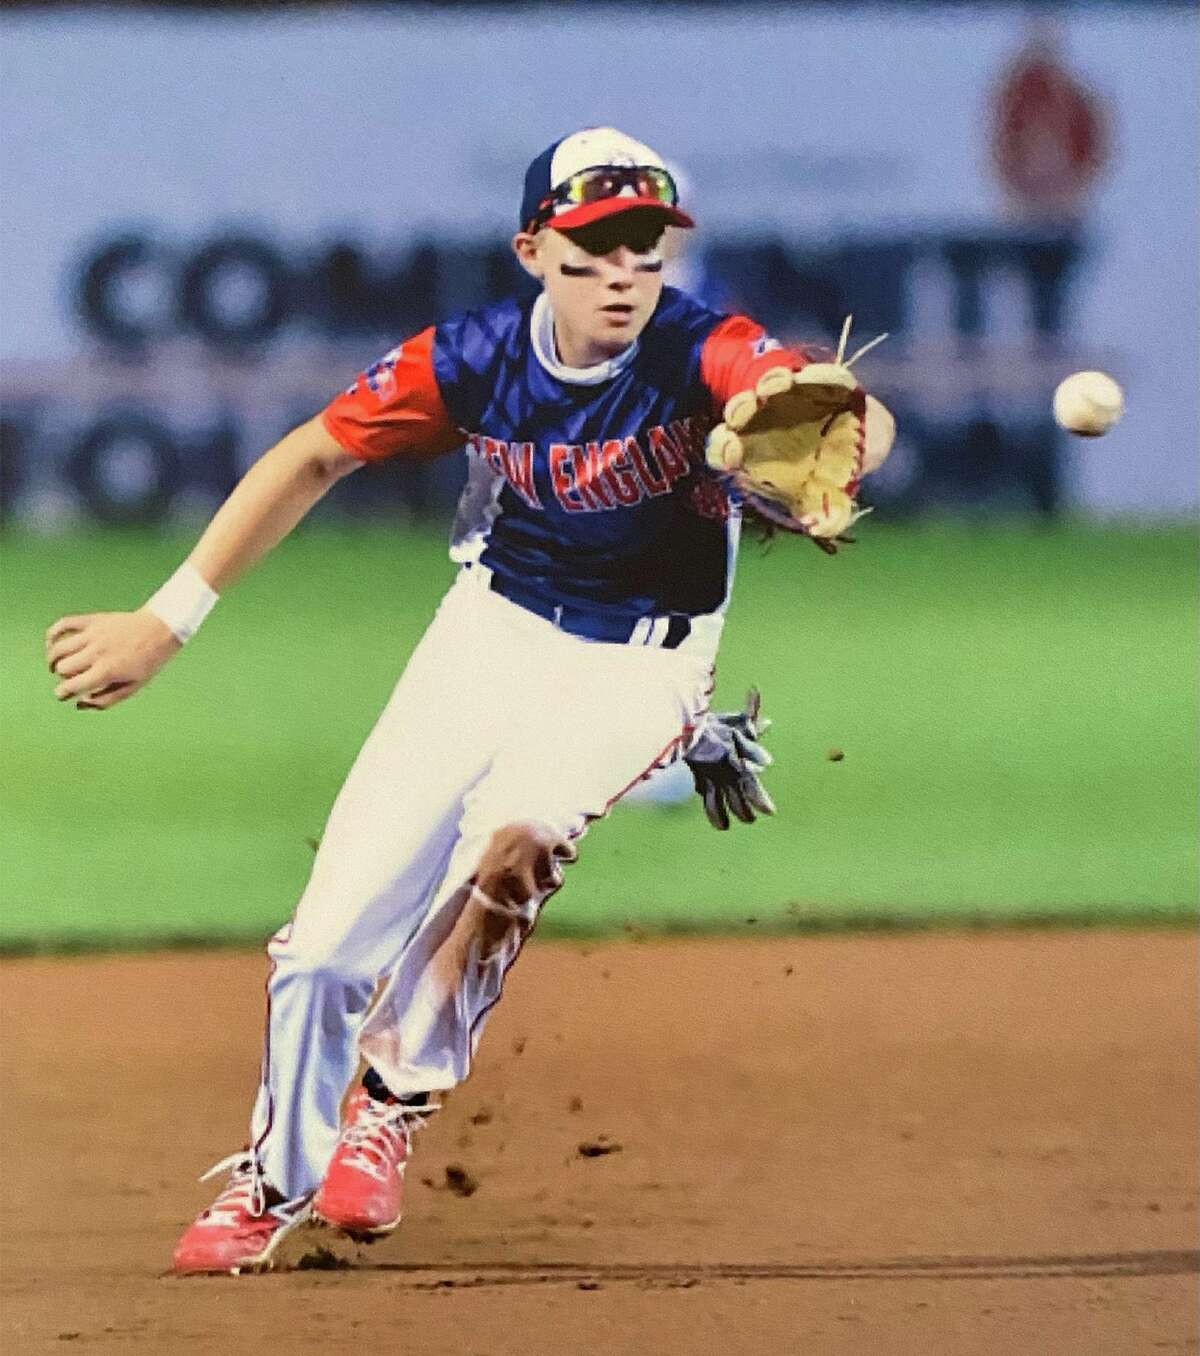 Norwalk's Freddy Melton fields the ball during the 13U Babe Ruth Baseball World Series in Jamestown, N.Y., in August, 2021.